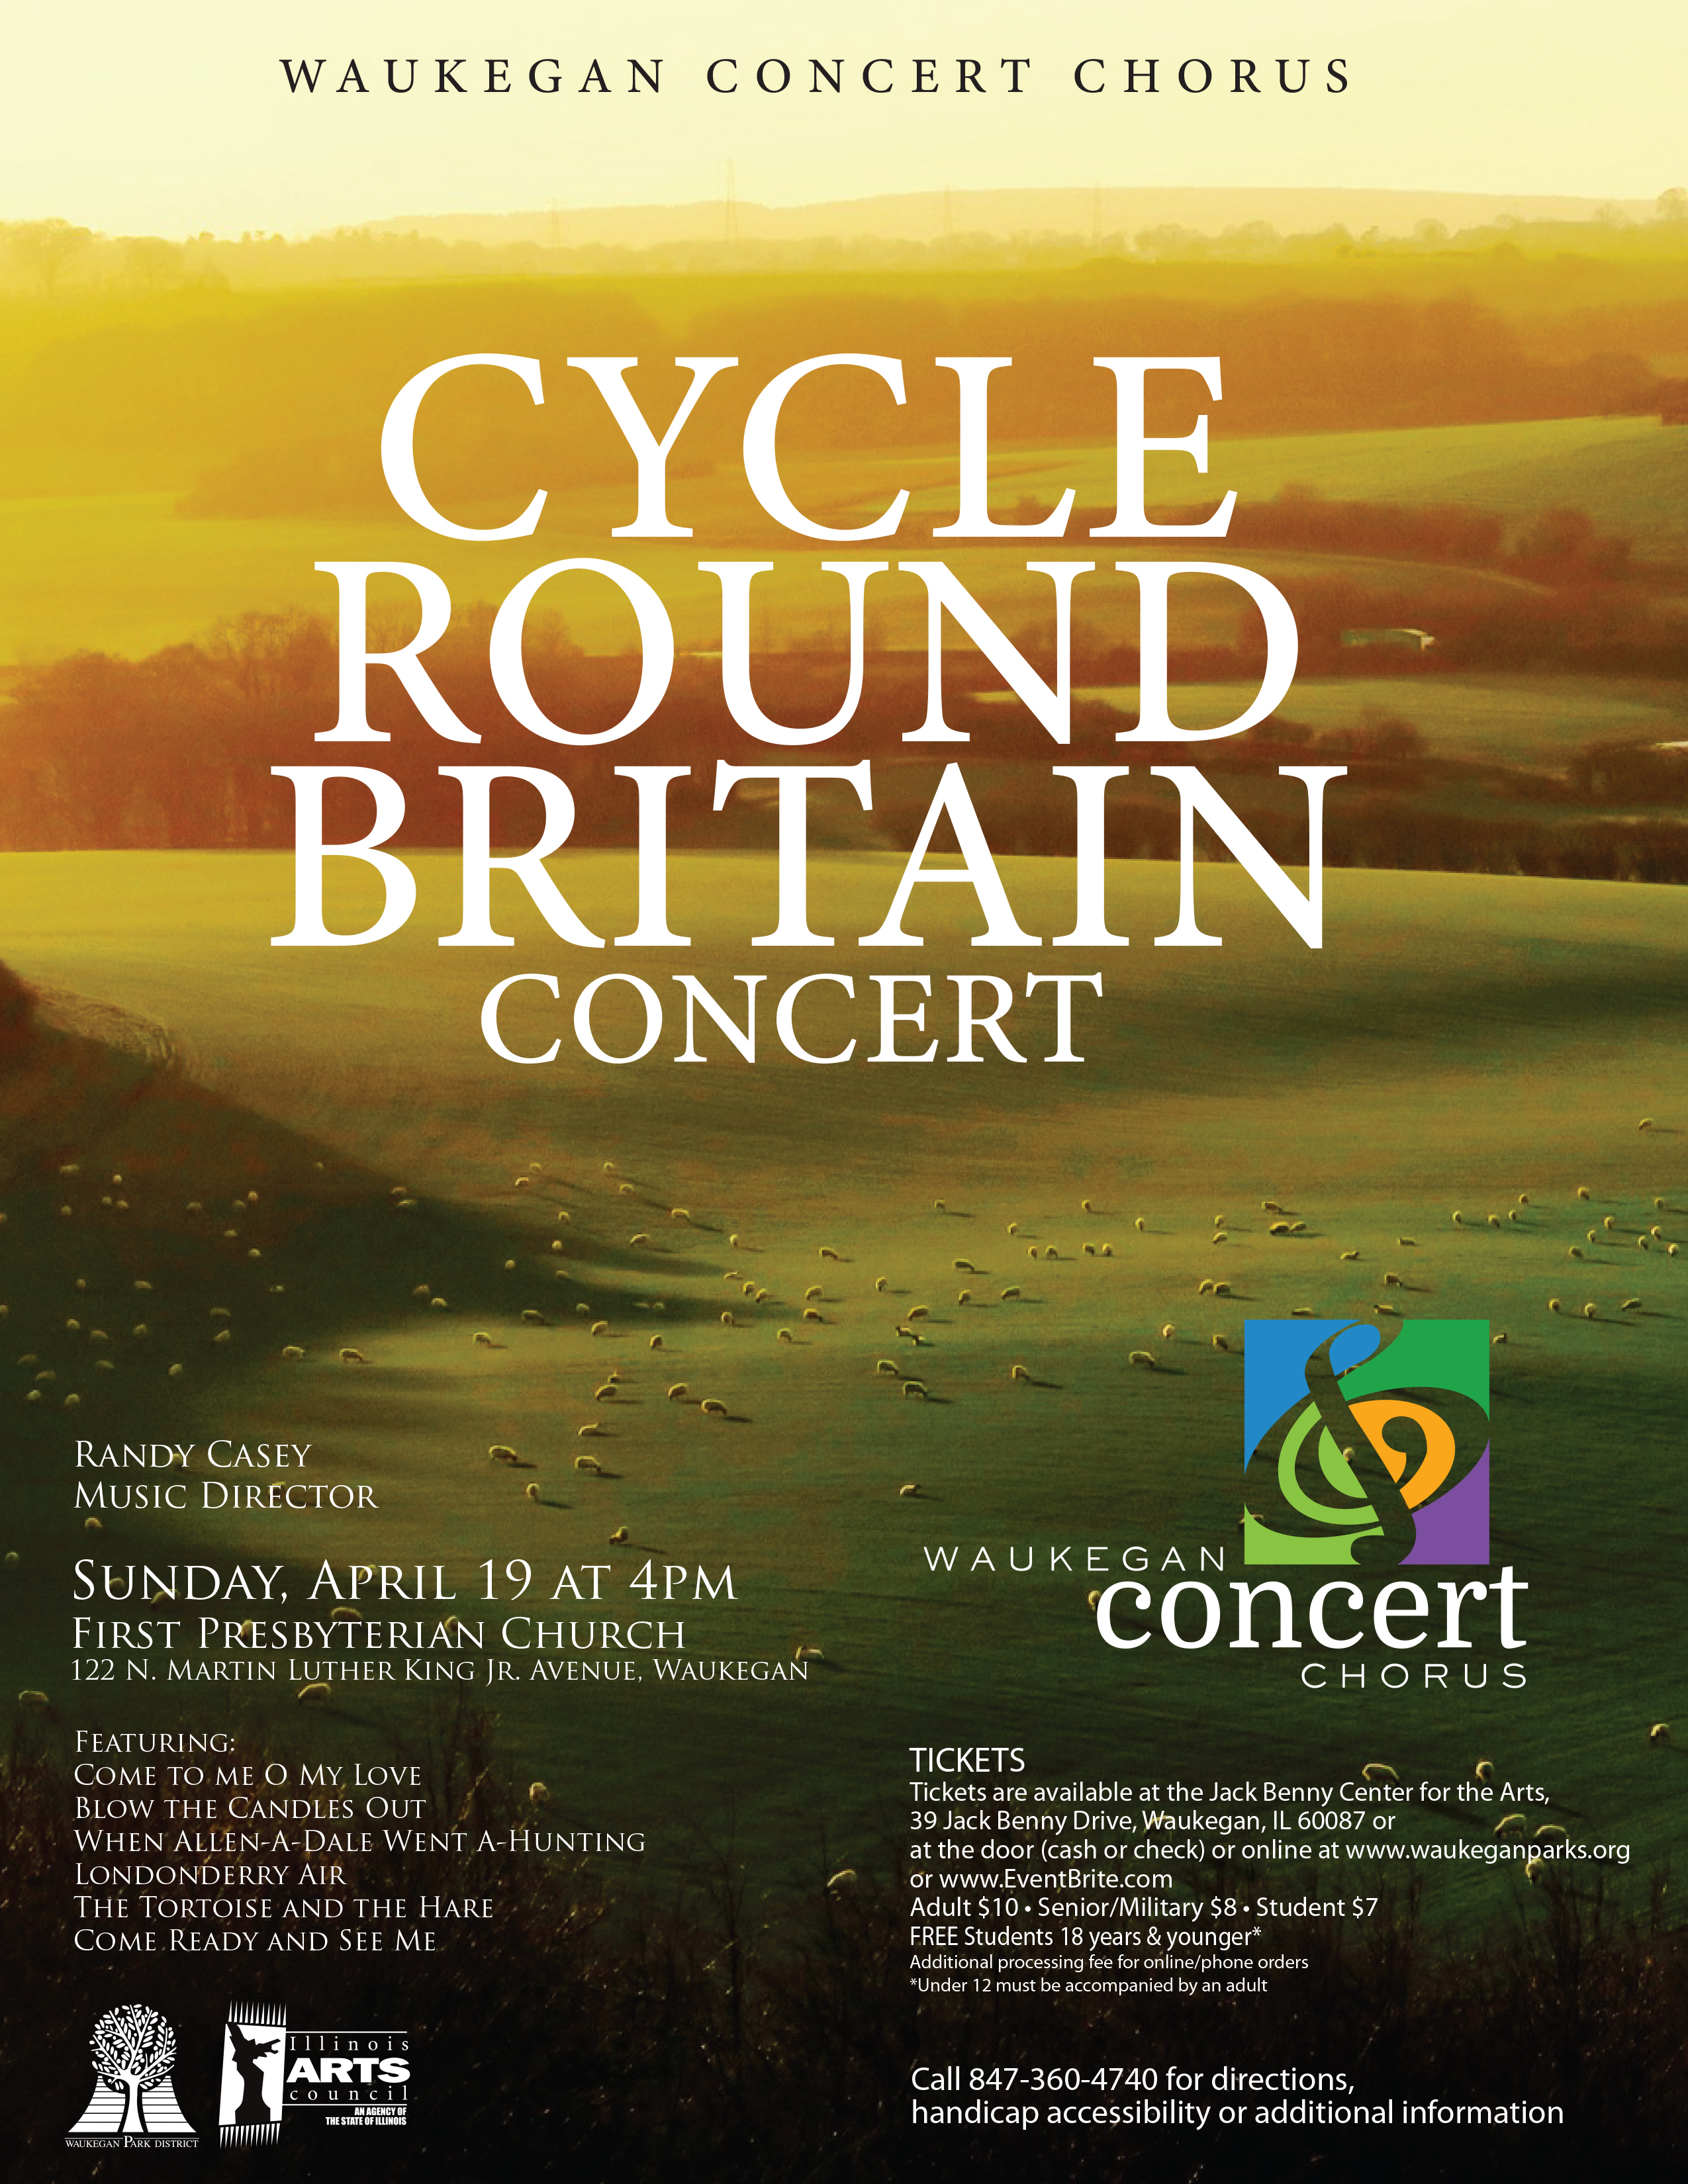 Cycle Round Britain Concert